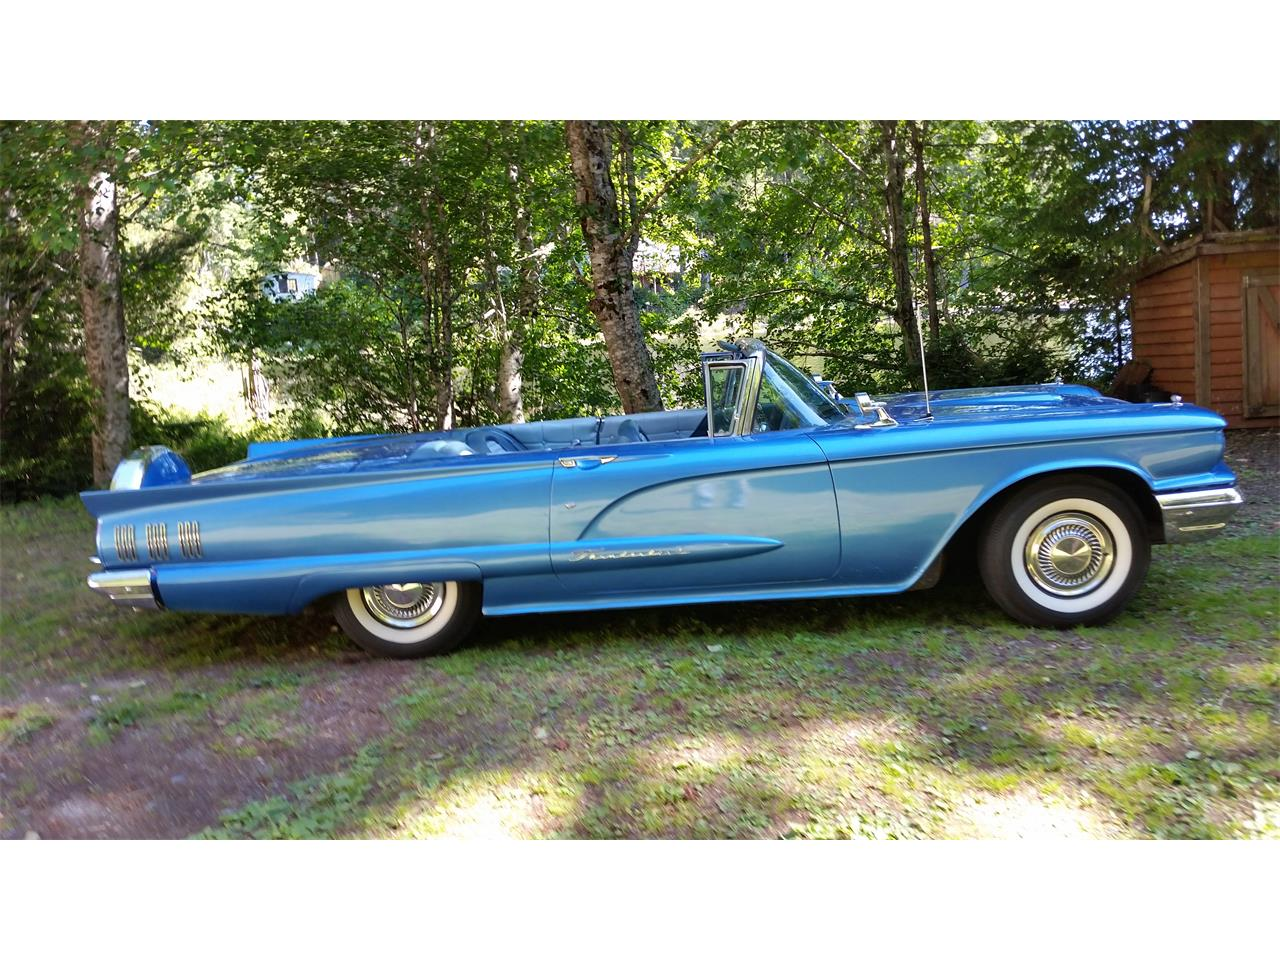 Large picture of 60 ford thunderbird offered by a private seller njtq